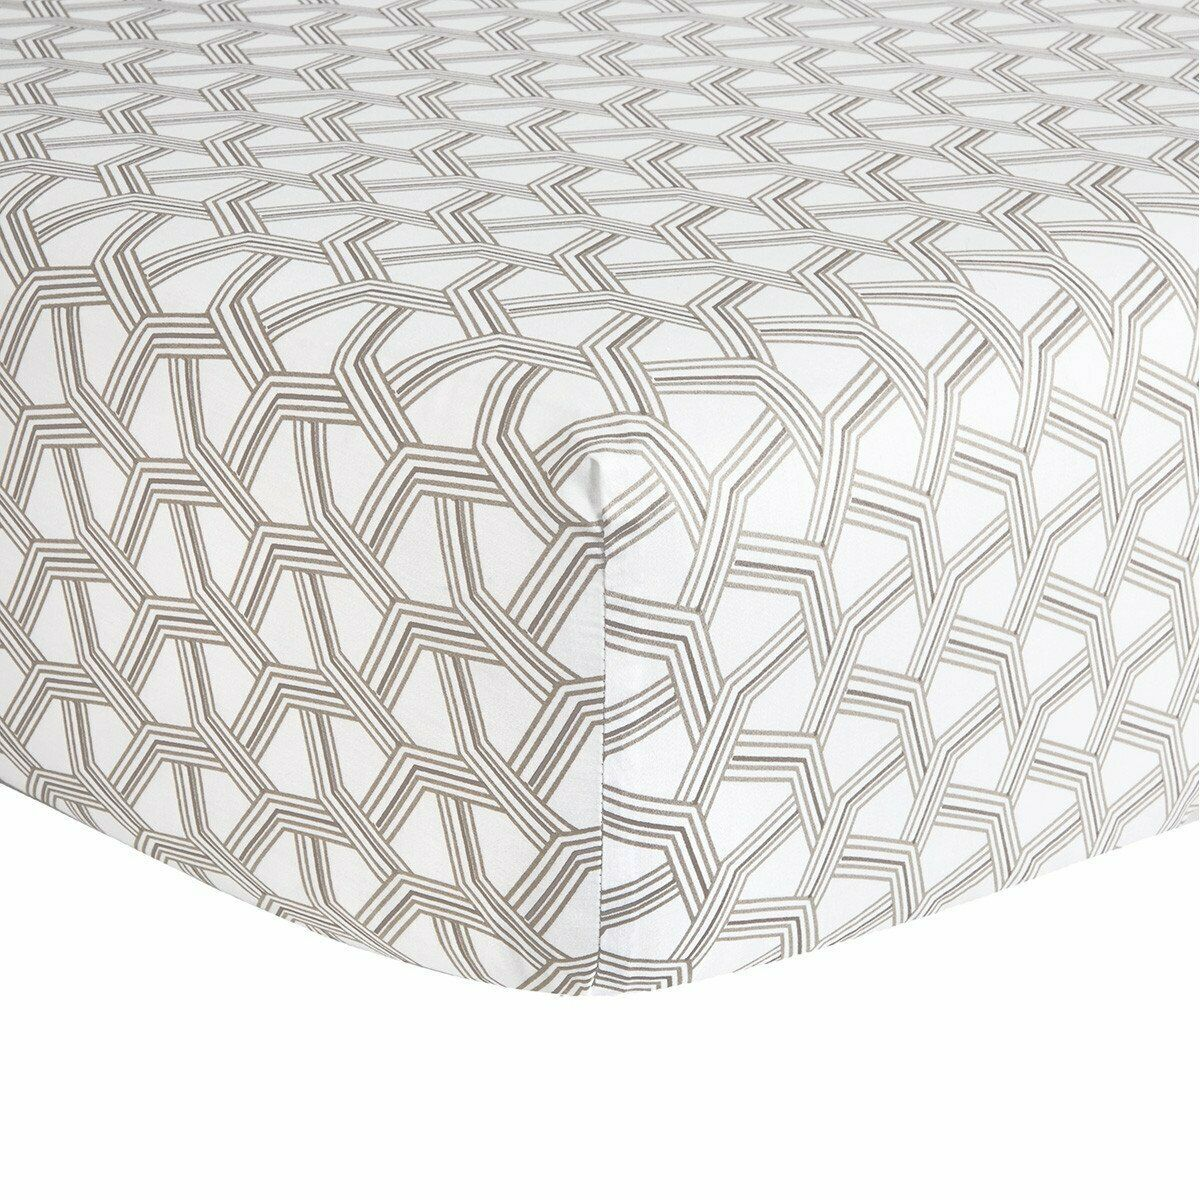 HUGO BOSS CONNECTION COTTON SATEEN FITTED SHEET IN GEOMETRIC PRINT